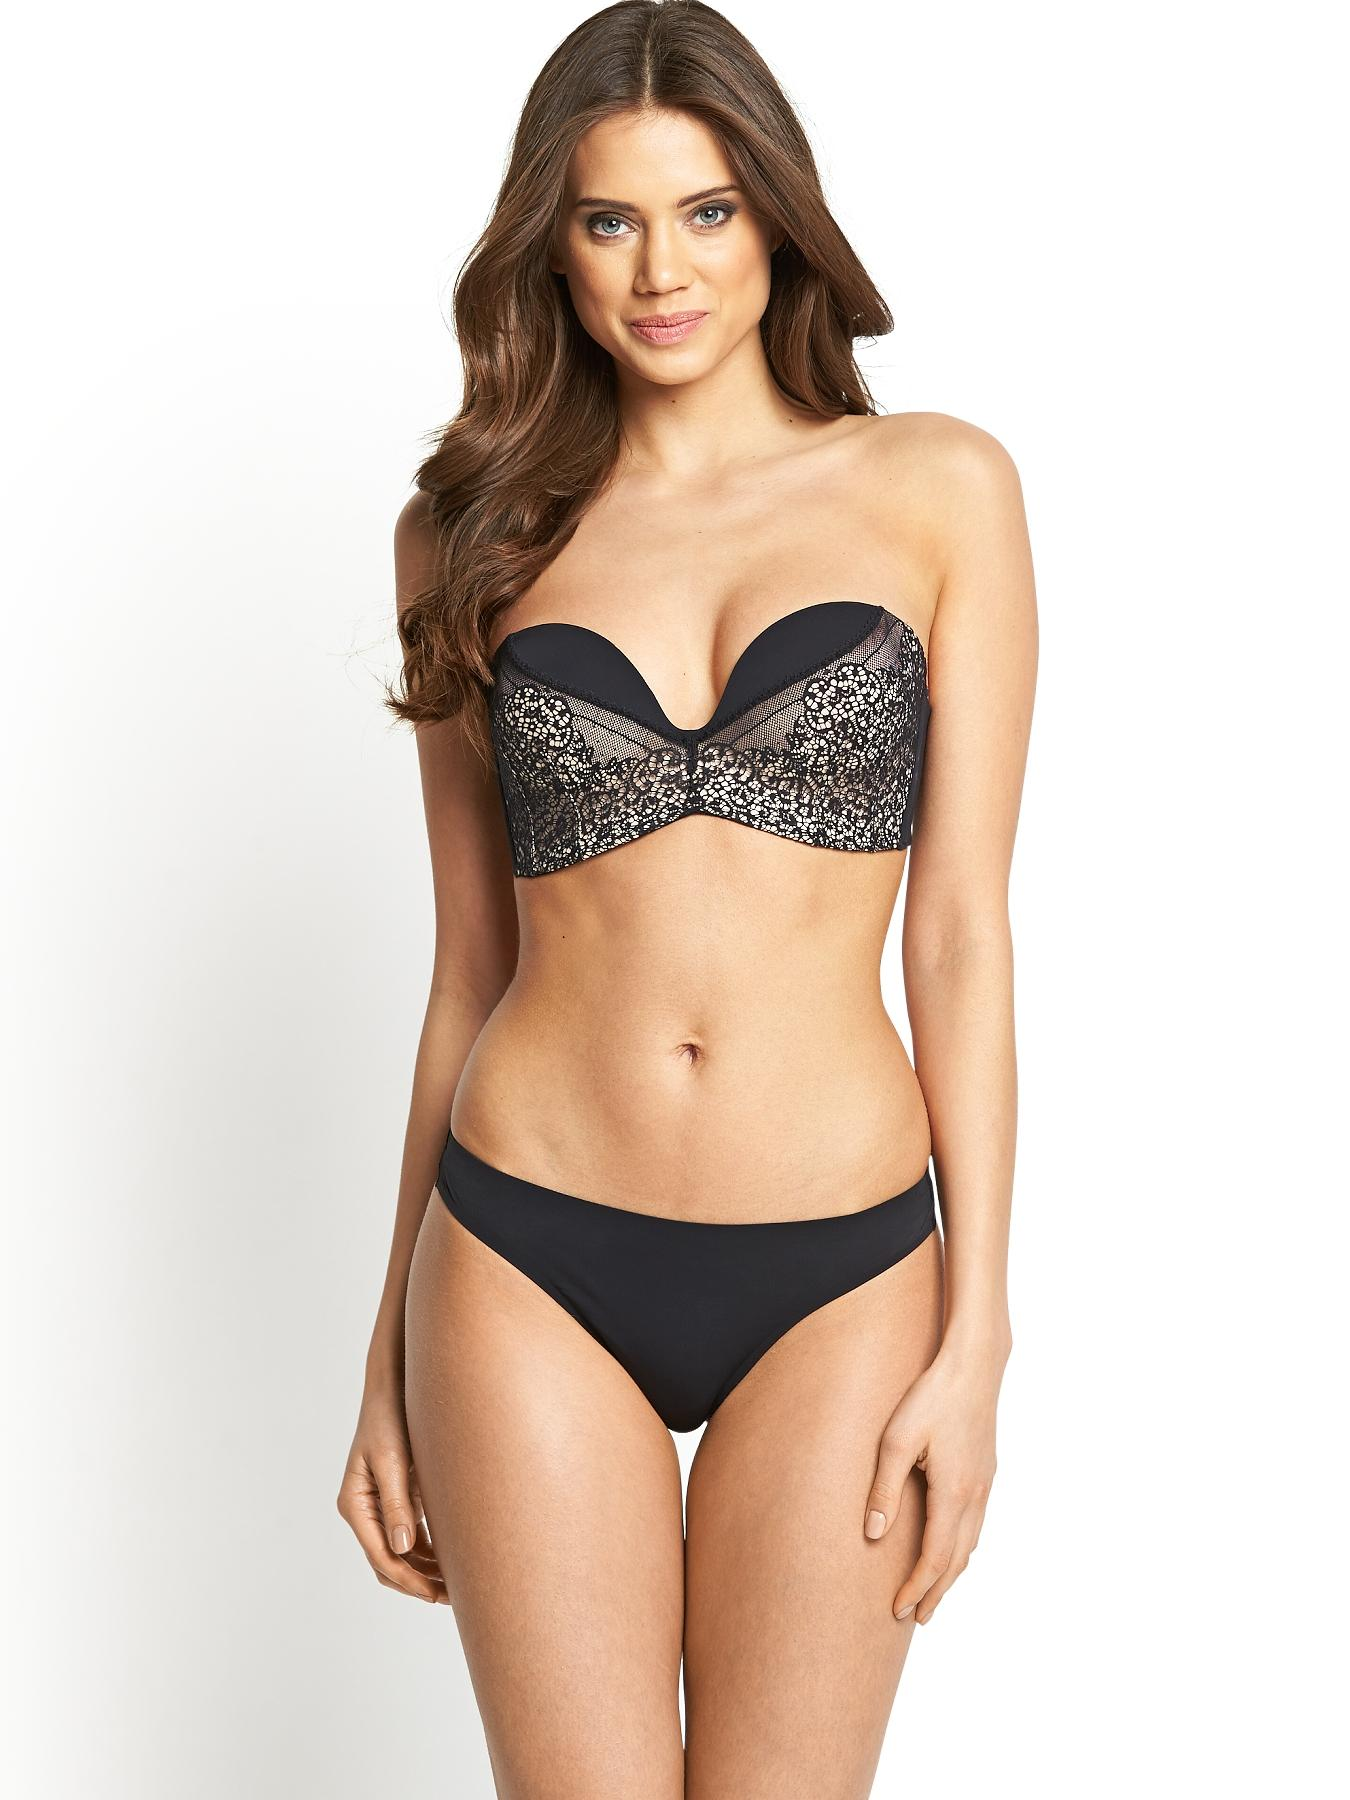 Ultimates Strapless Thong, Black,Ivory at Littlewoods